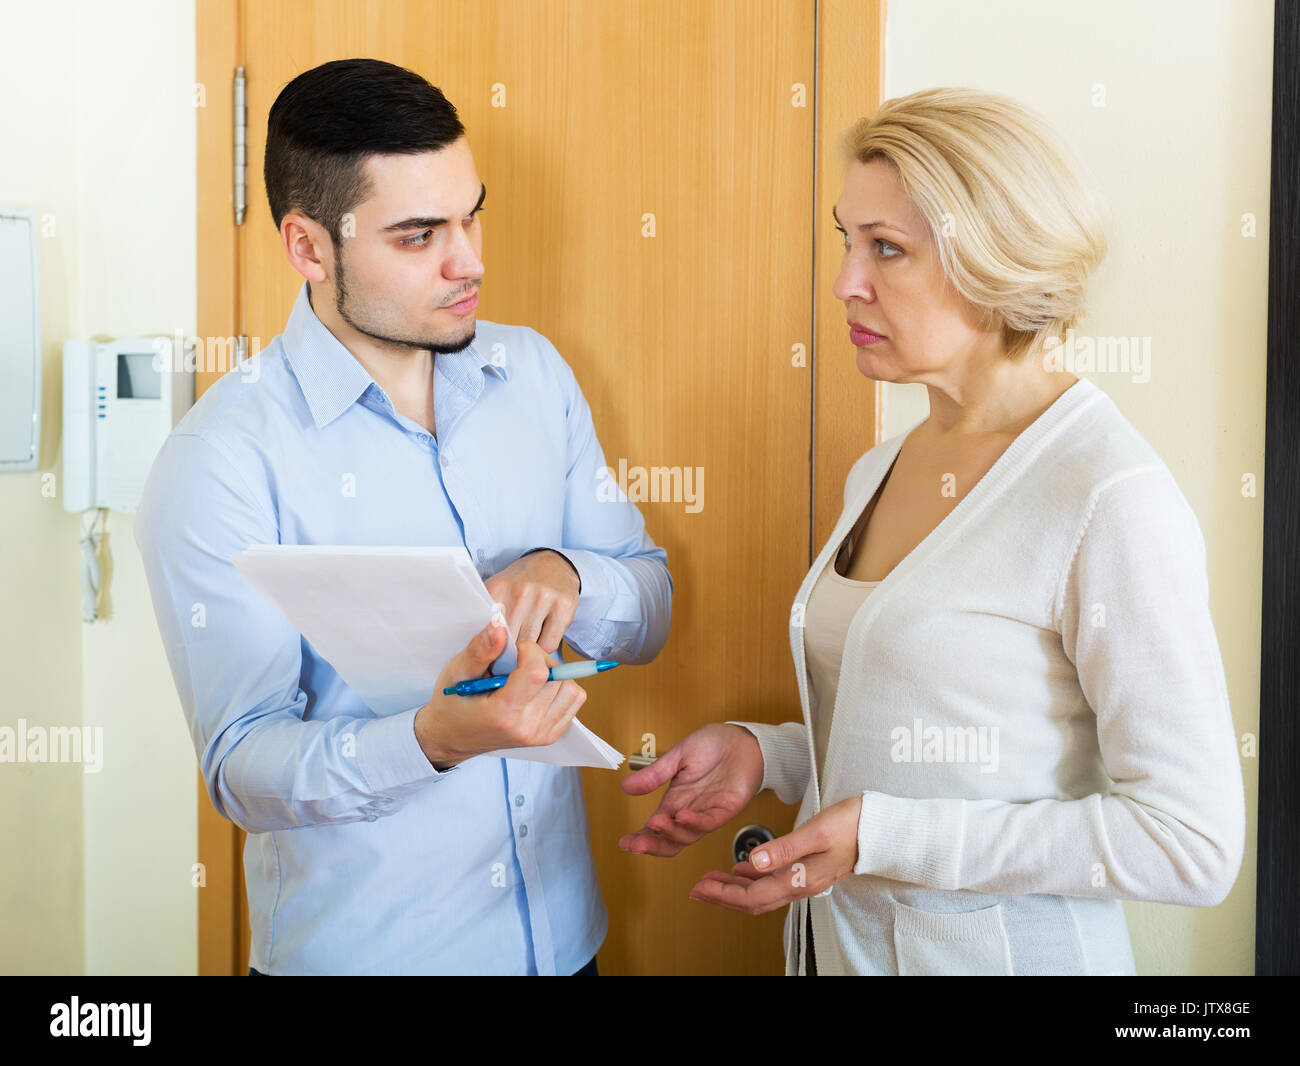 Сollector is trying to get the arrears from woman at home door - Stock Image